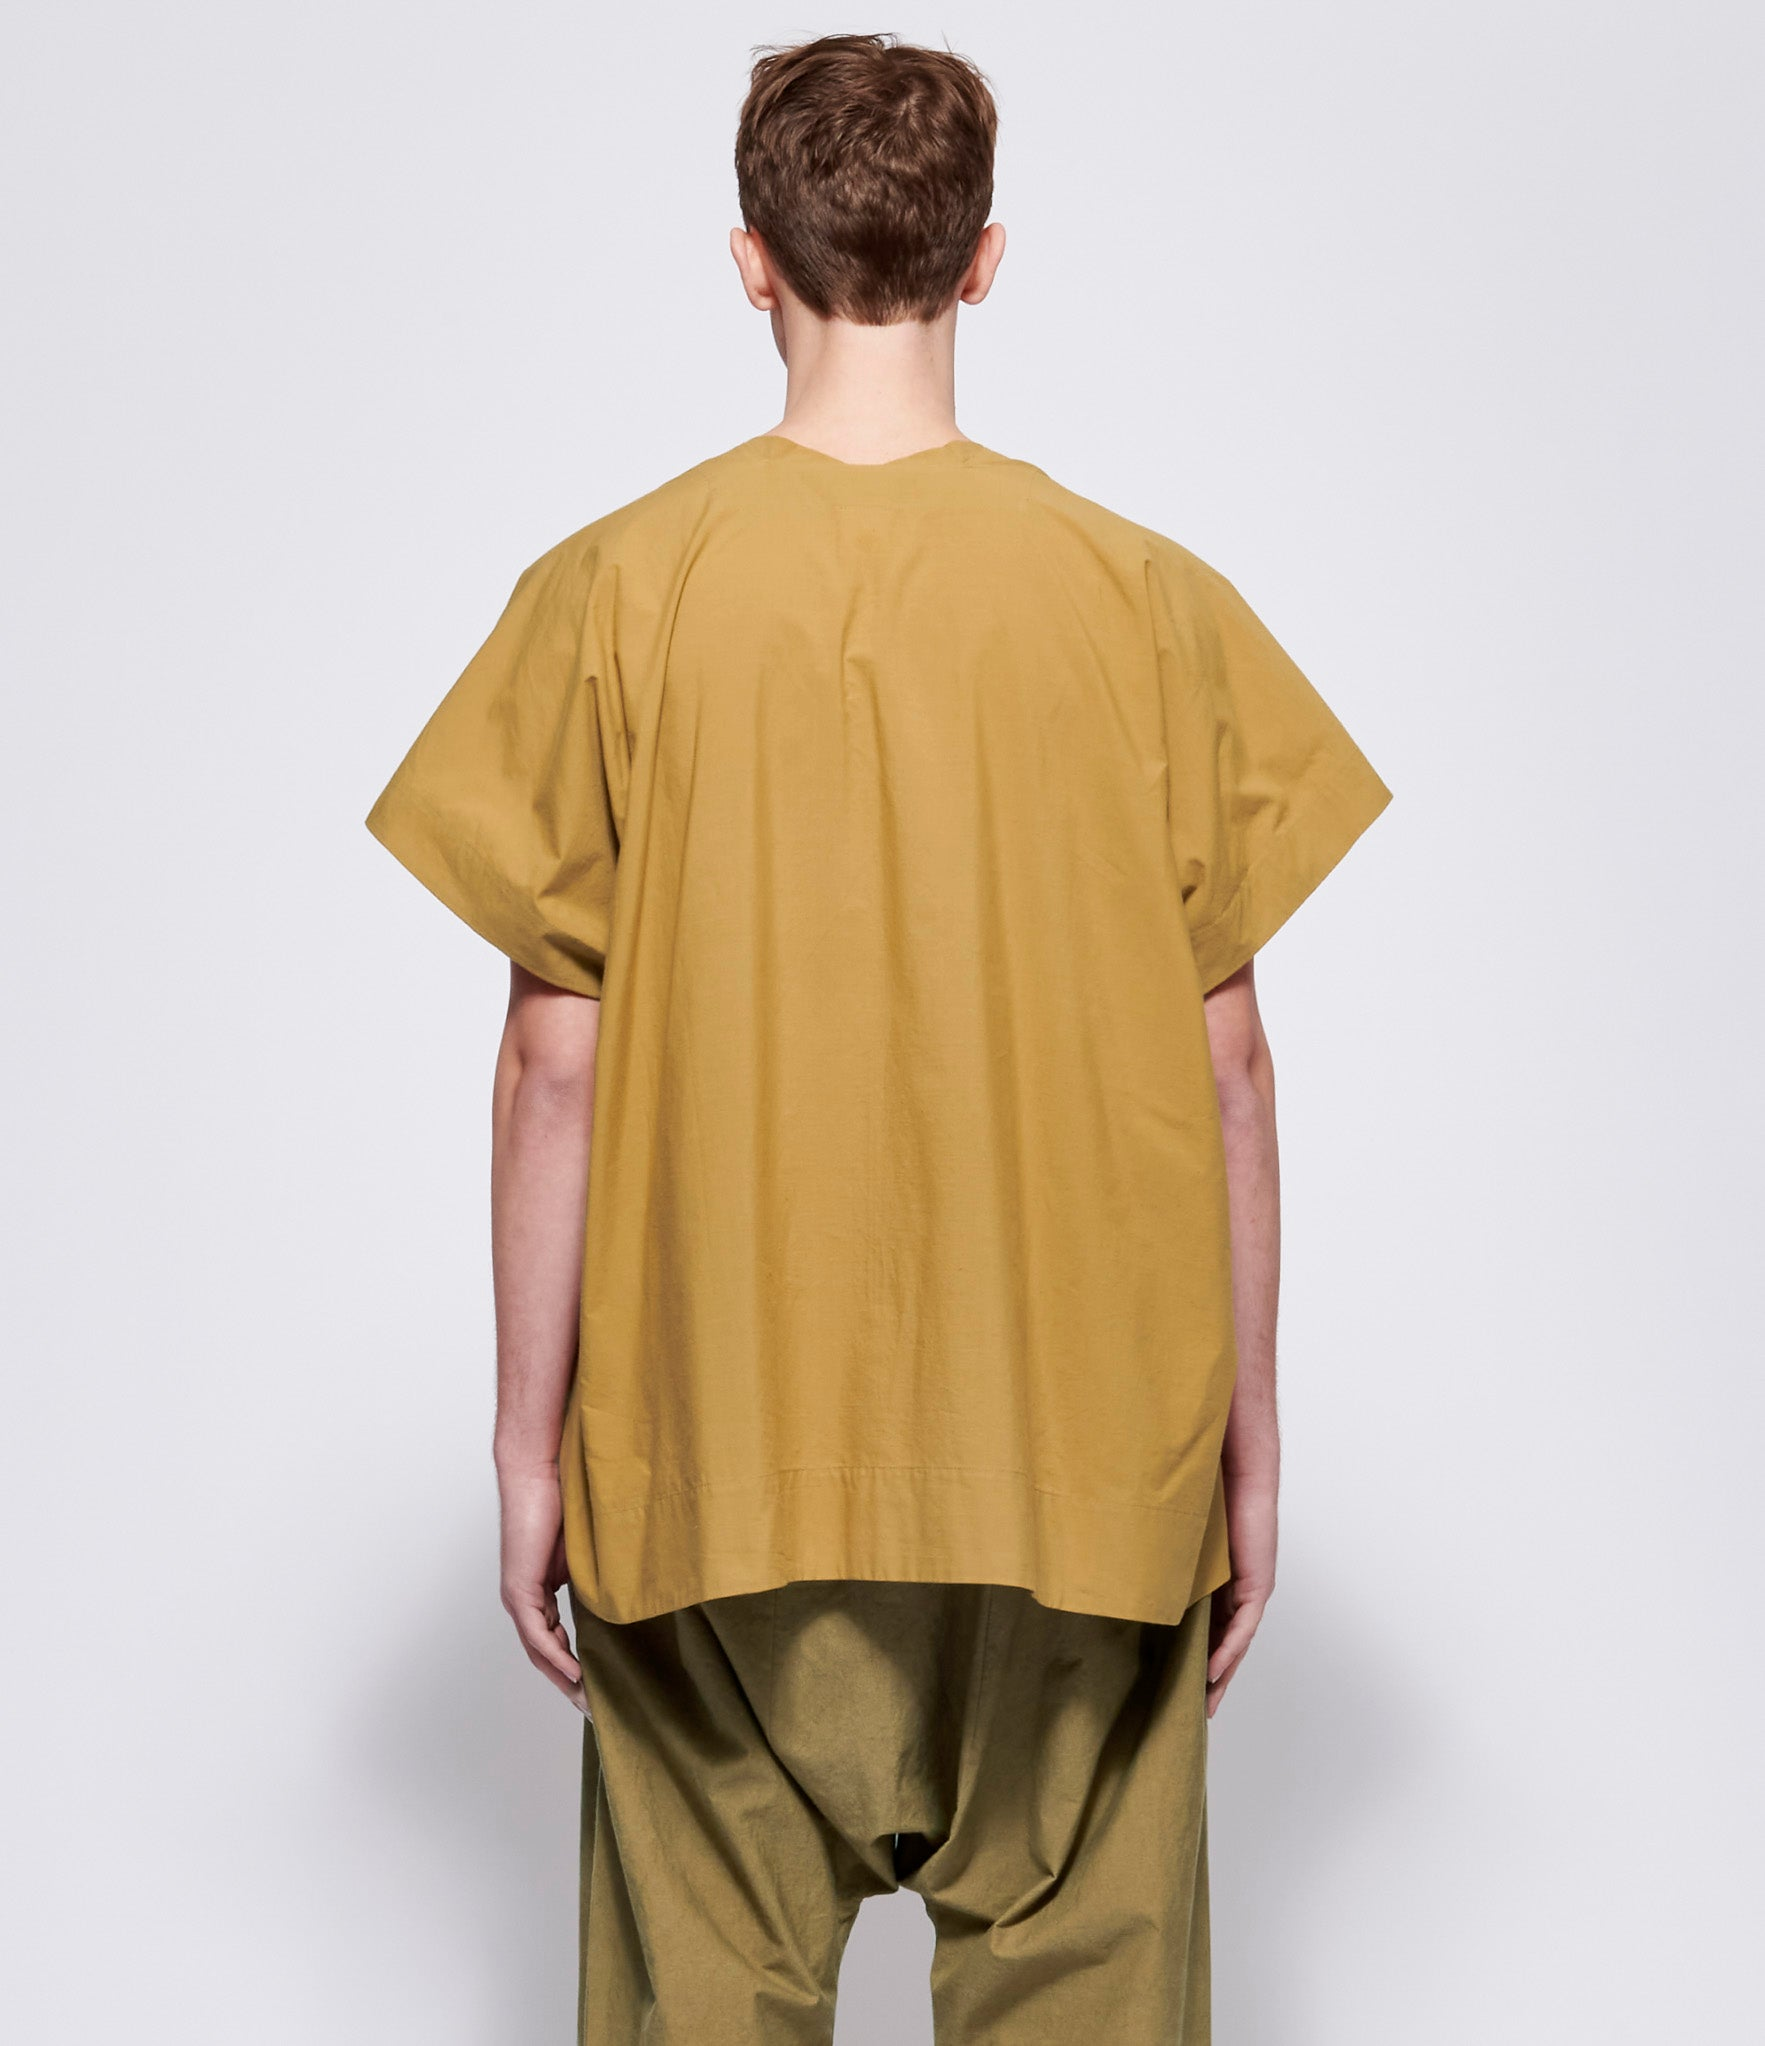 Jan Jan Van Essche #27 Mustard Cotton Pullover Shirt